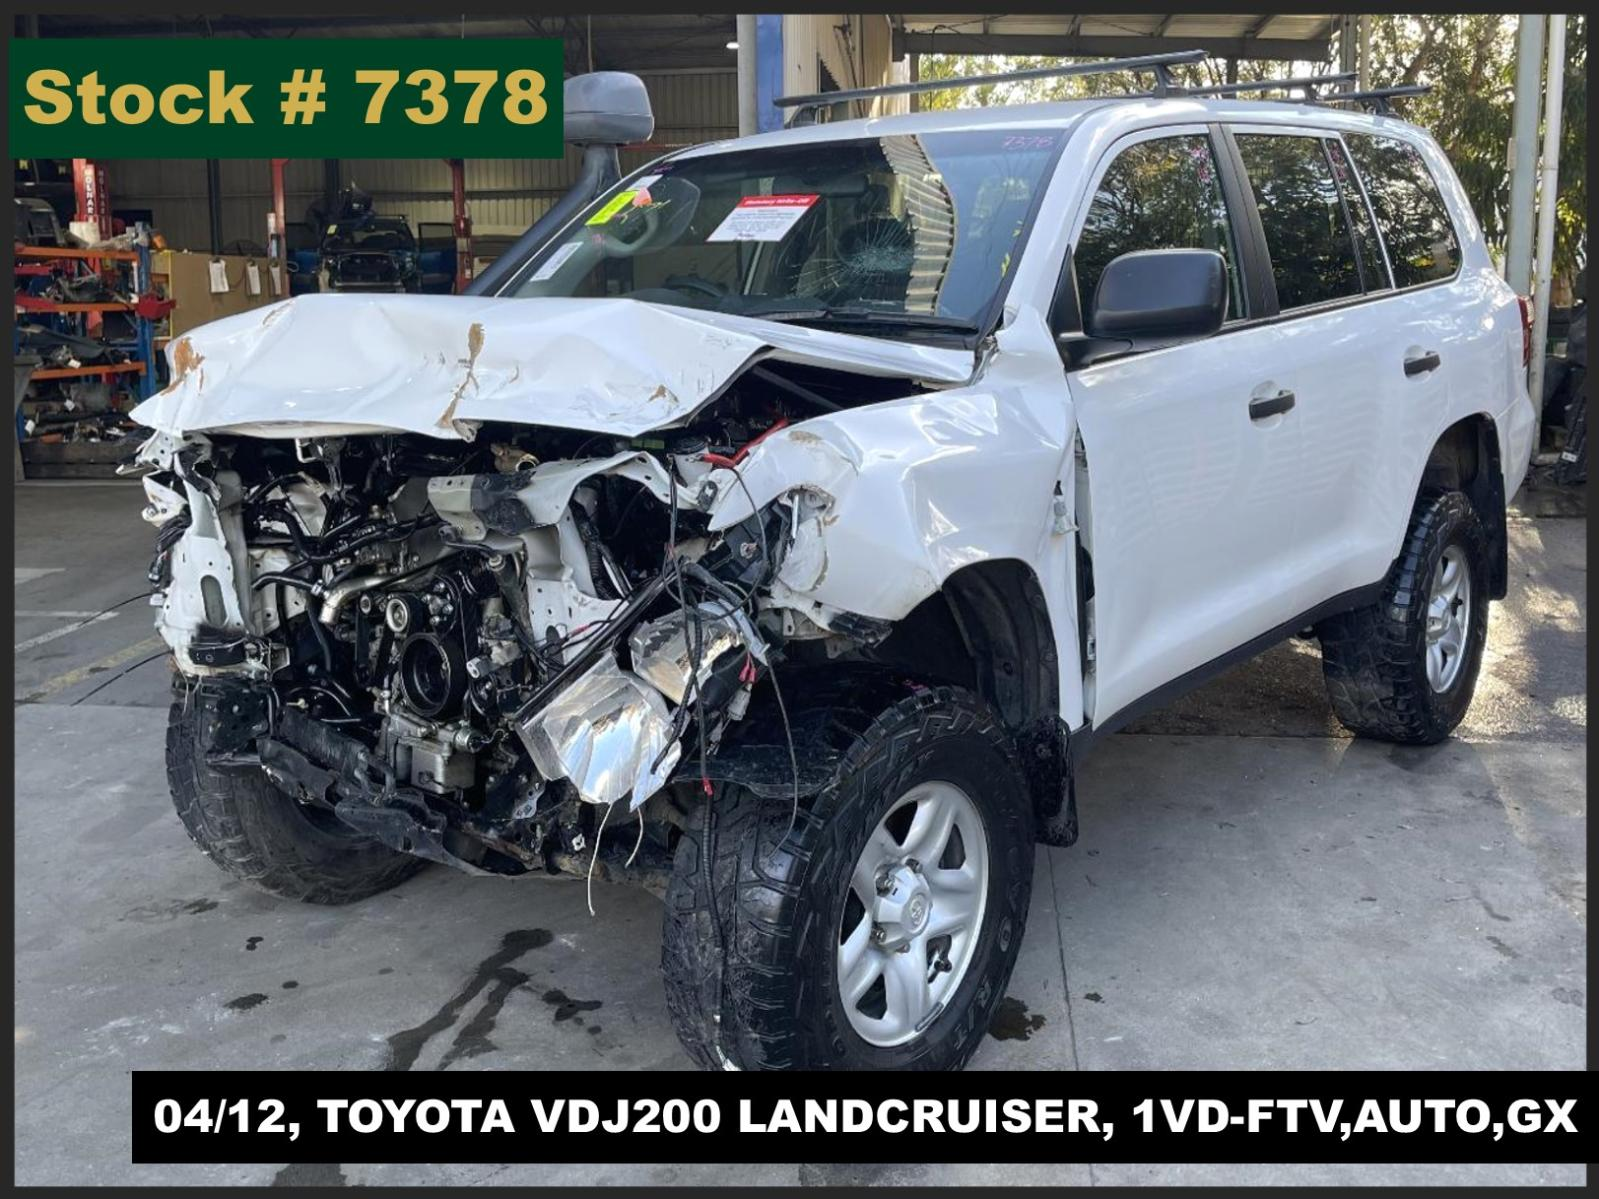 Image for a Toyota Landcruiser 2012 4 Door Station Wagon